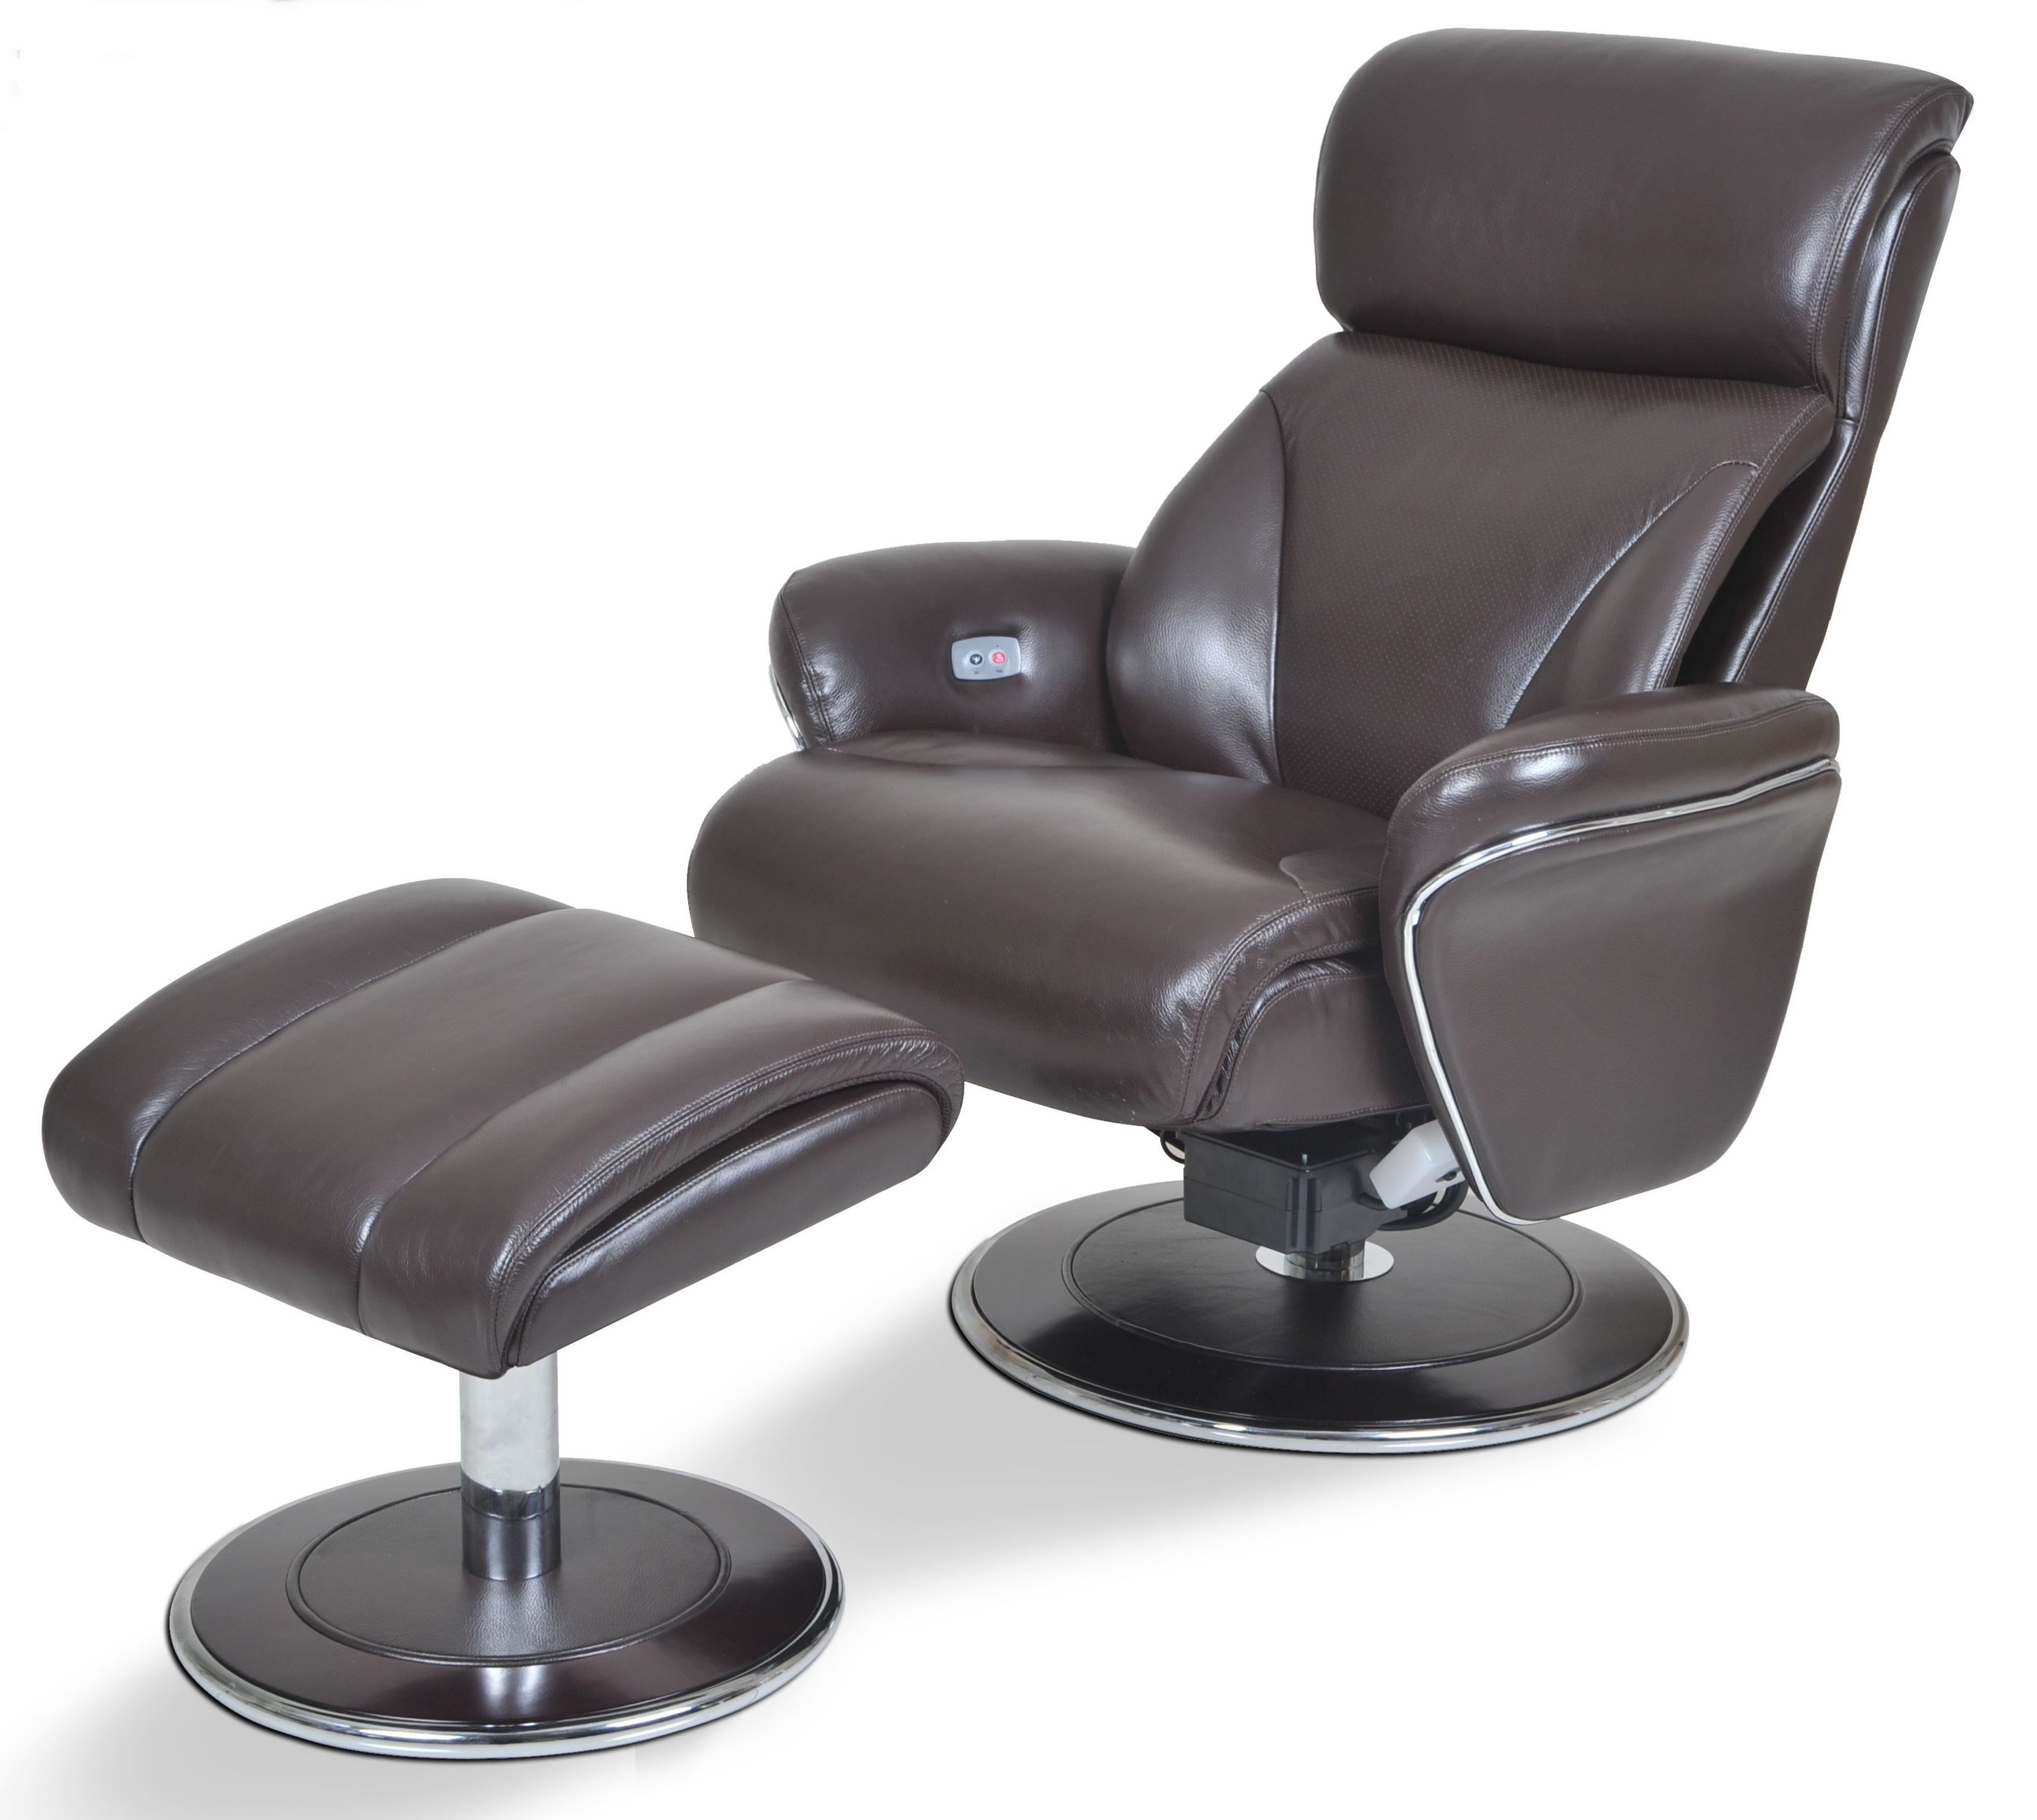 Ergonomic Leather Espresso Reclining Chair & Ottoman from